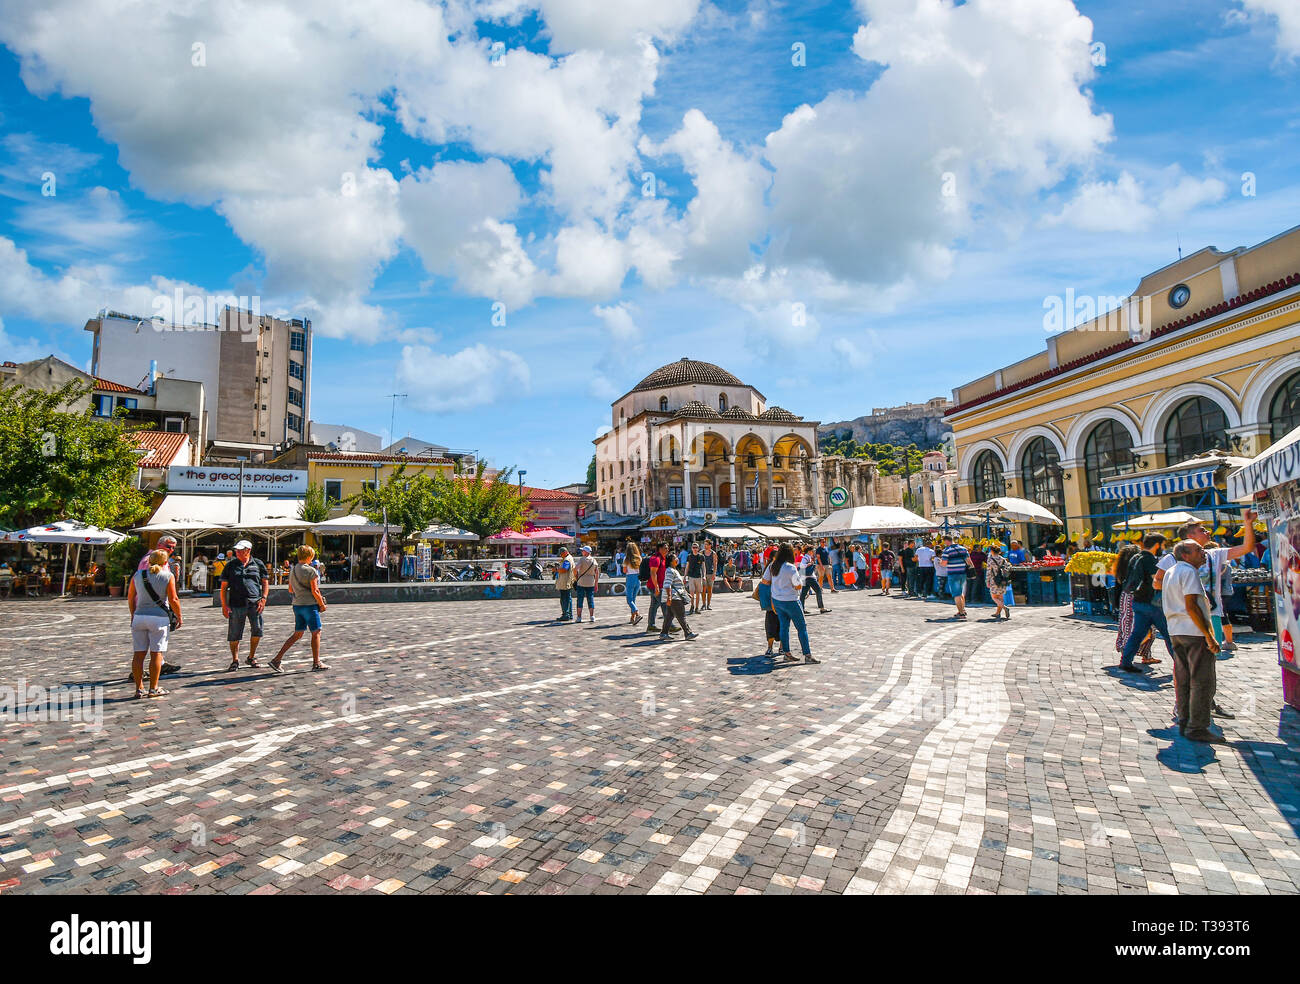 Local Greeks and tourists enjoy an afternoon shopping at Monastiraki Square near the base of Acropolis Hill on a summer day in Athens, Greece Stock Photo